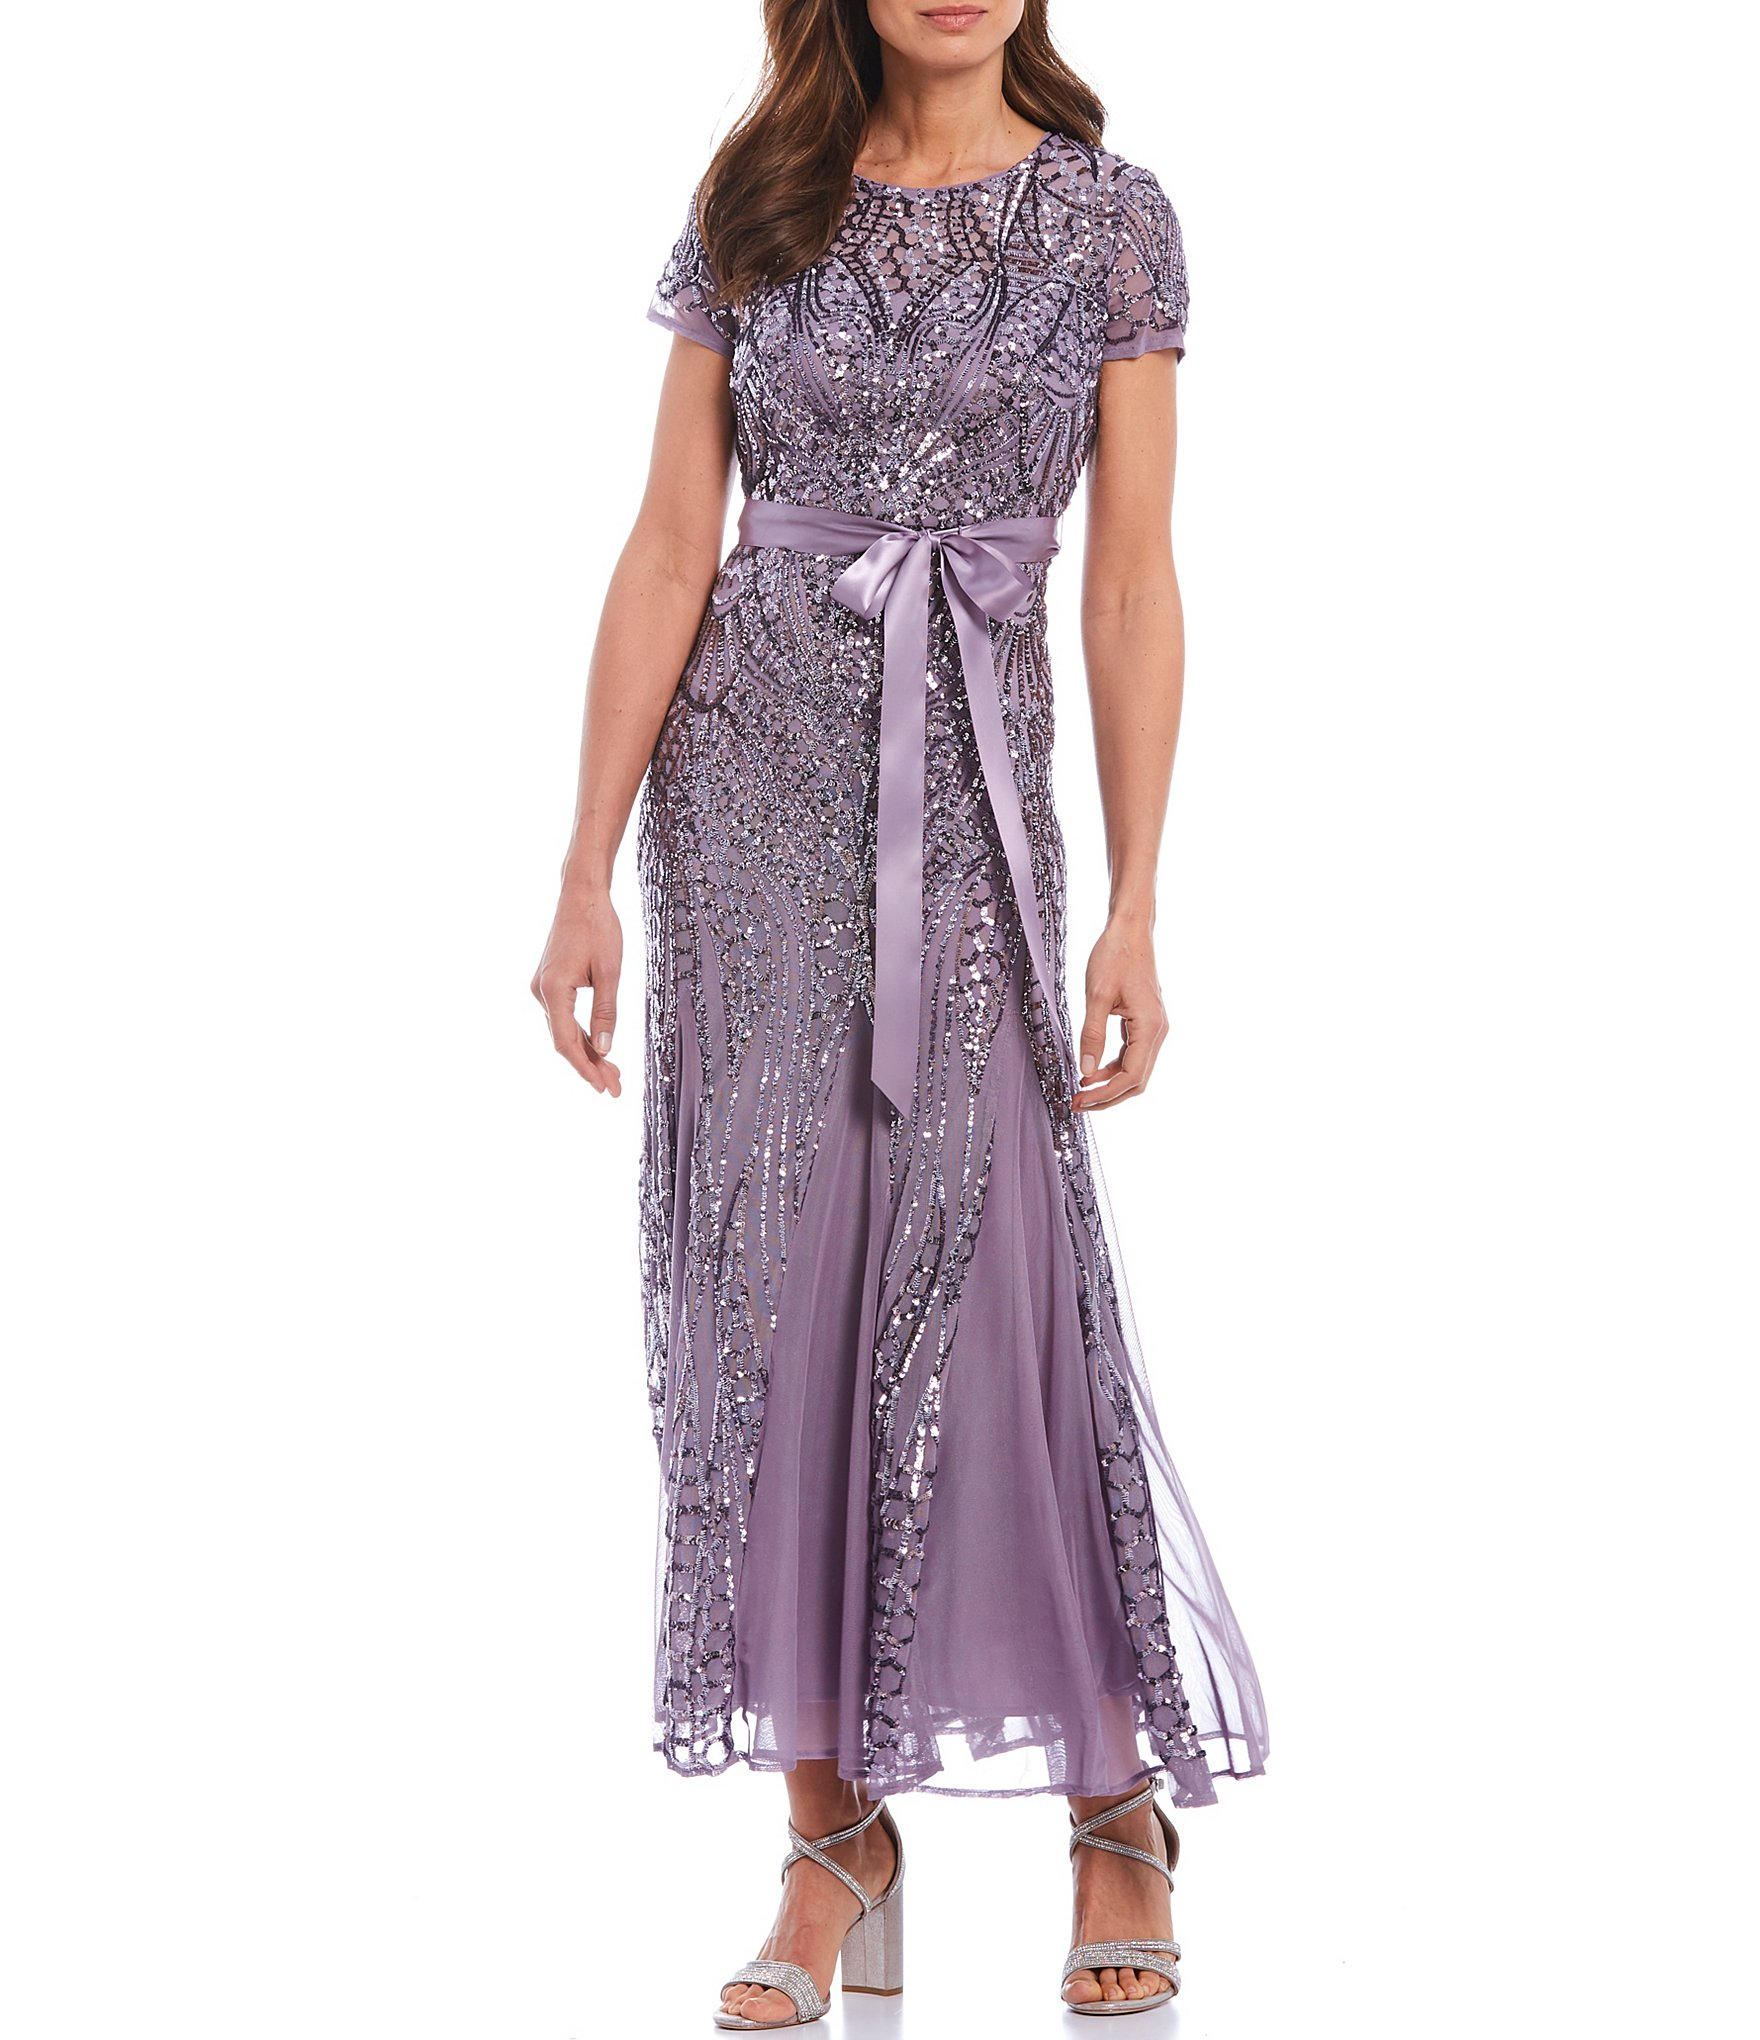 Mother of the Bride Dresses & Gowns   Dillard's